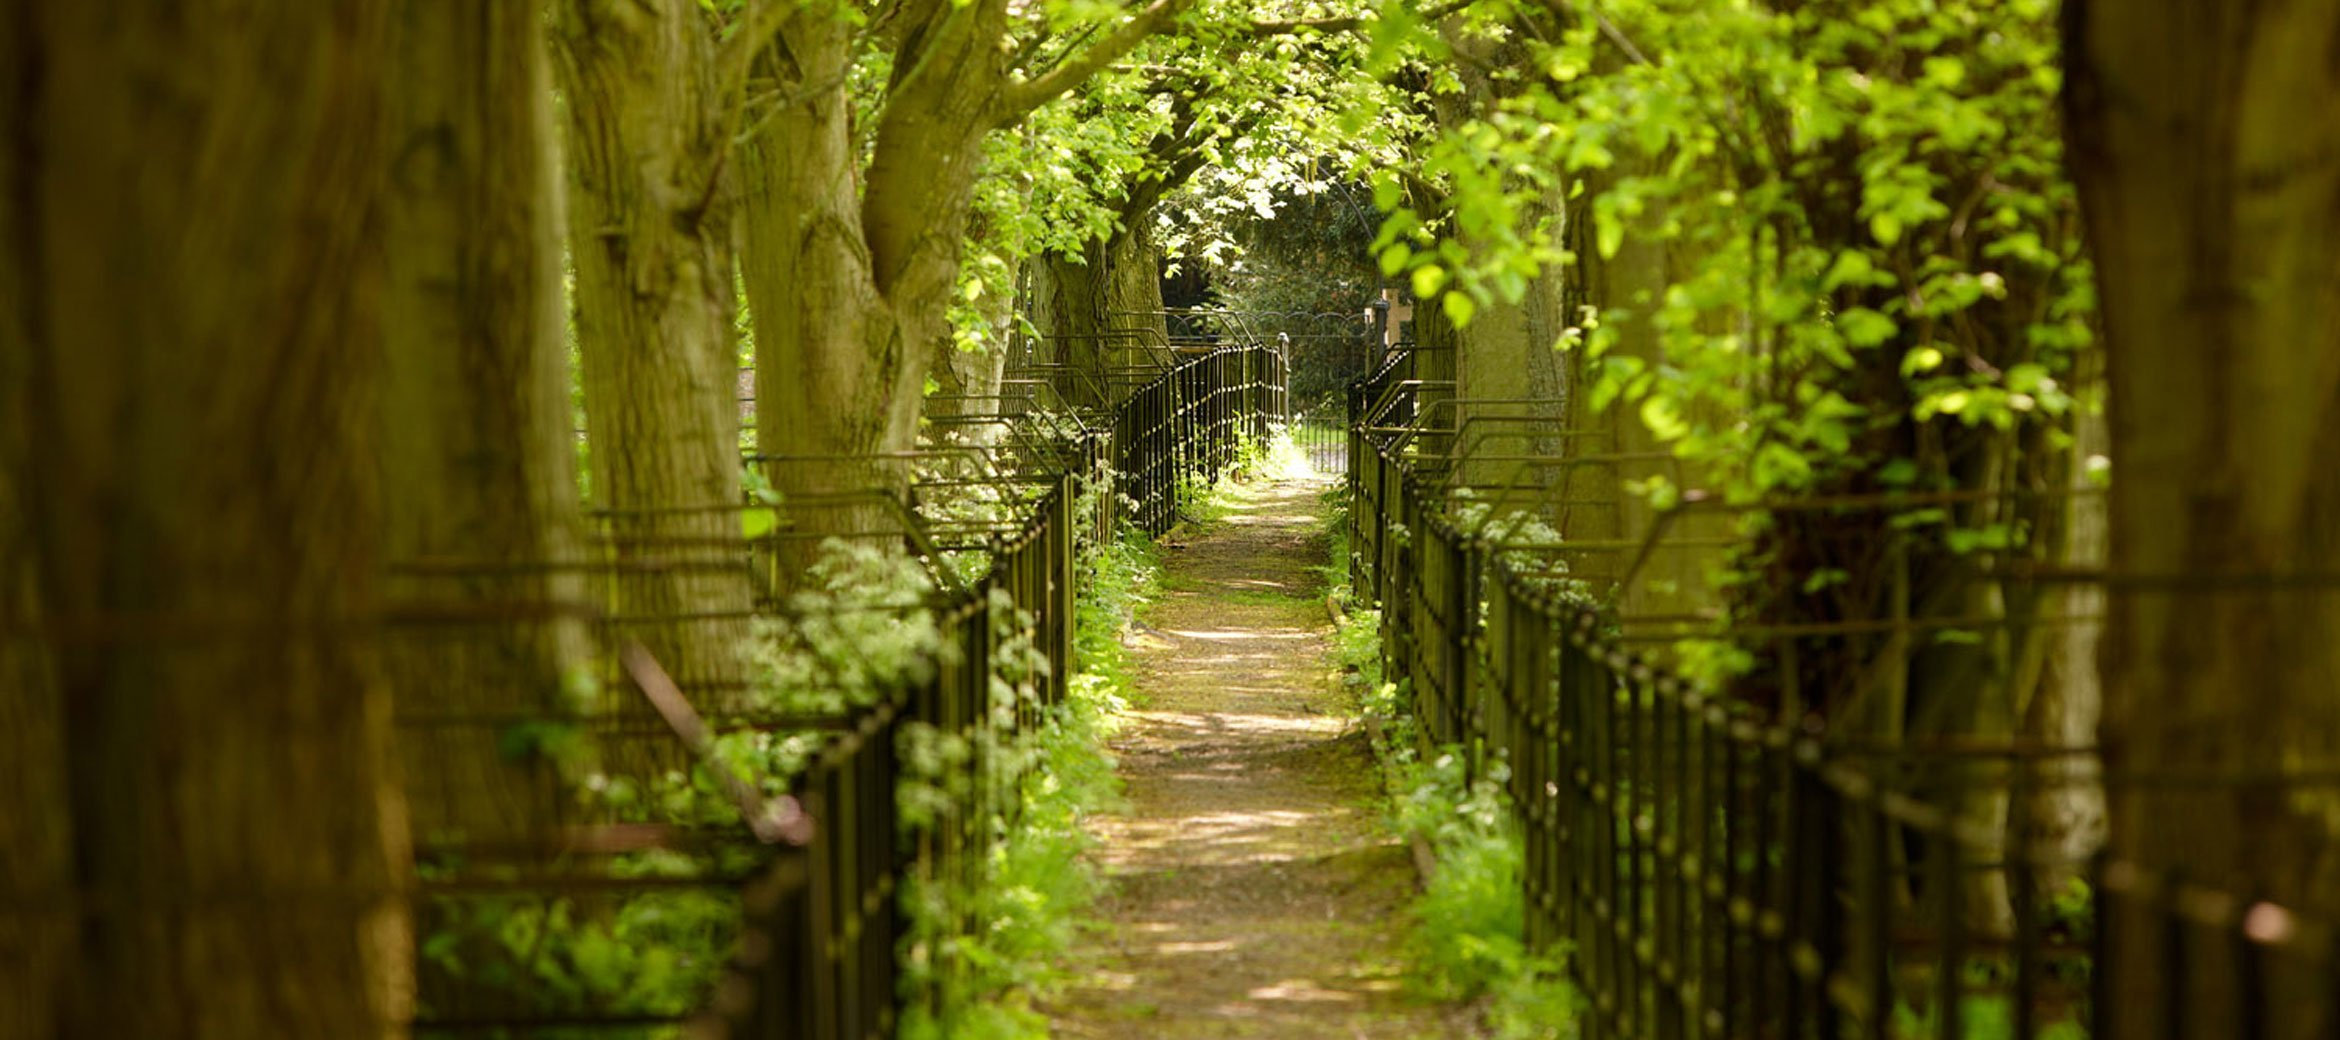 cornwell-manor-tree-avenue-walk